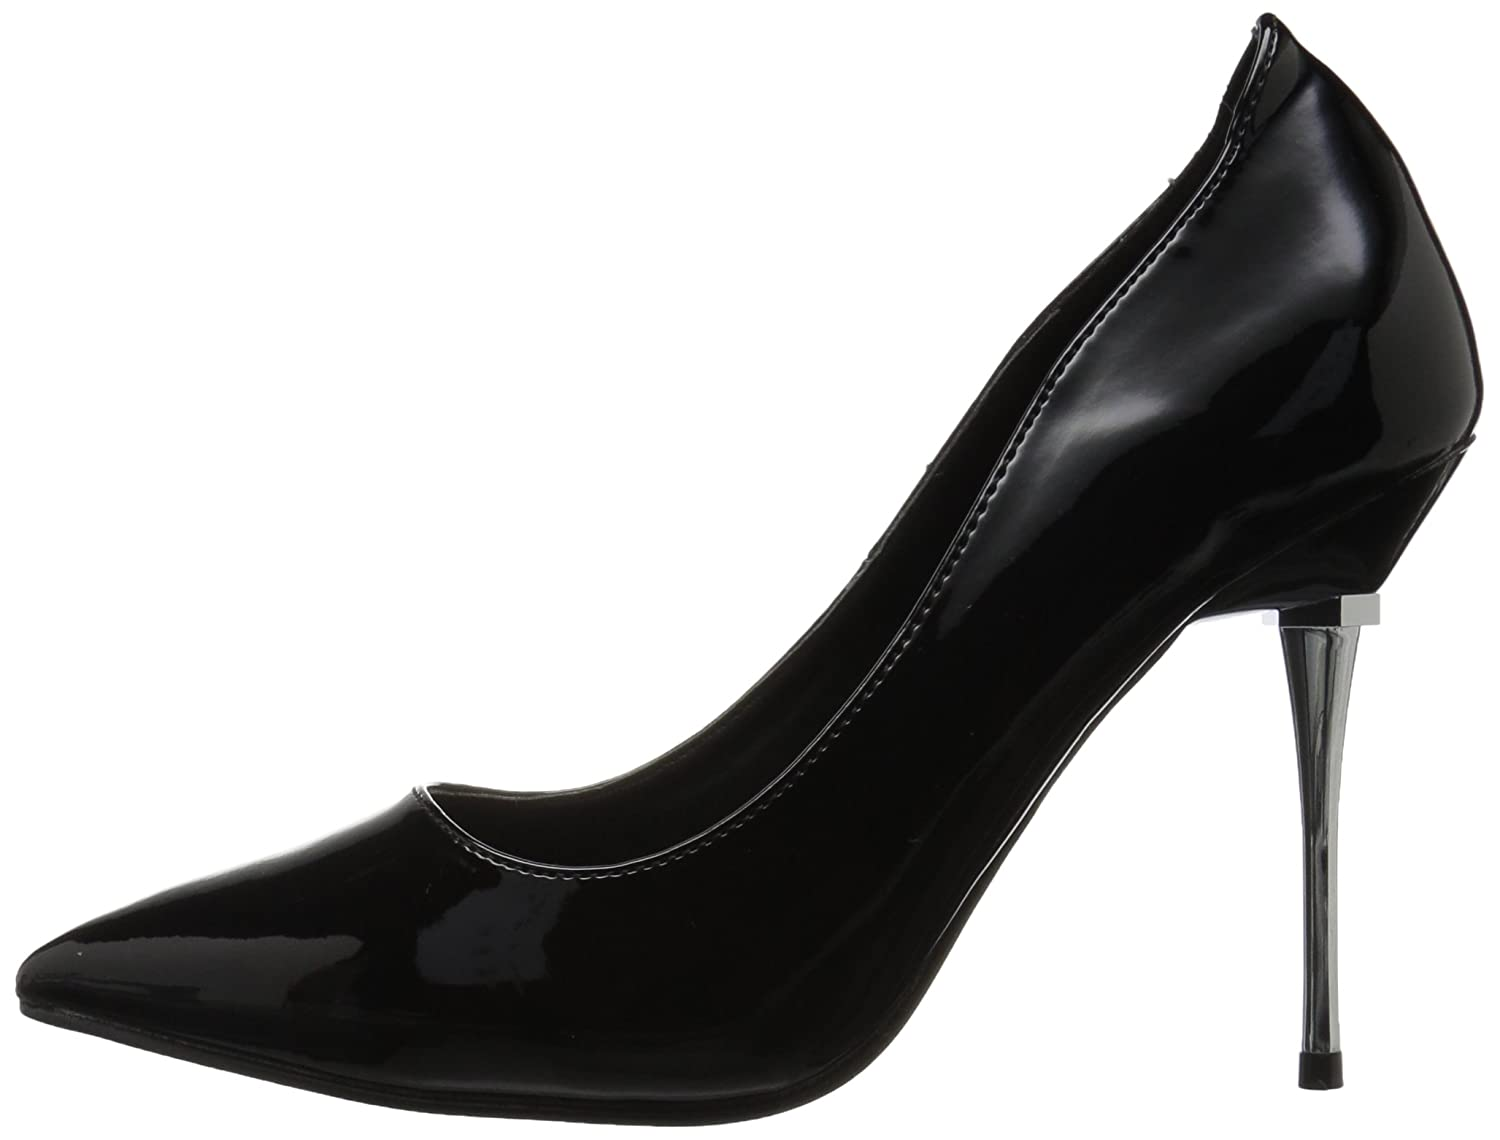 Pleaser APPEAL-20 Damen Stiletto Pumps Blk Blk Blk Pat c5a92b